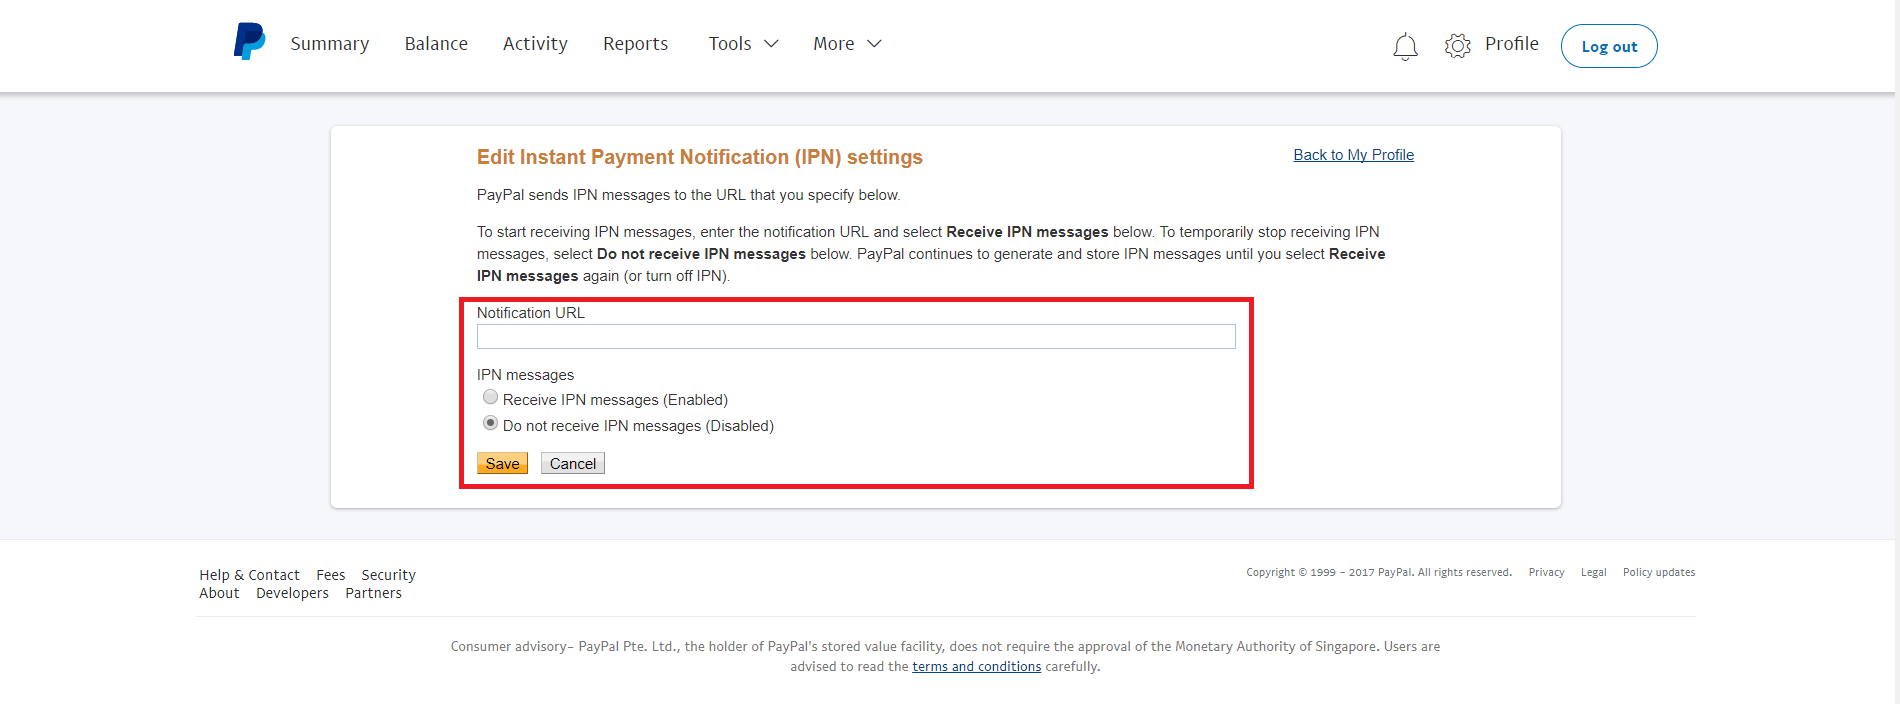 Paypal: How to Activate Account? « eCommerce store